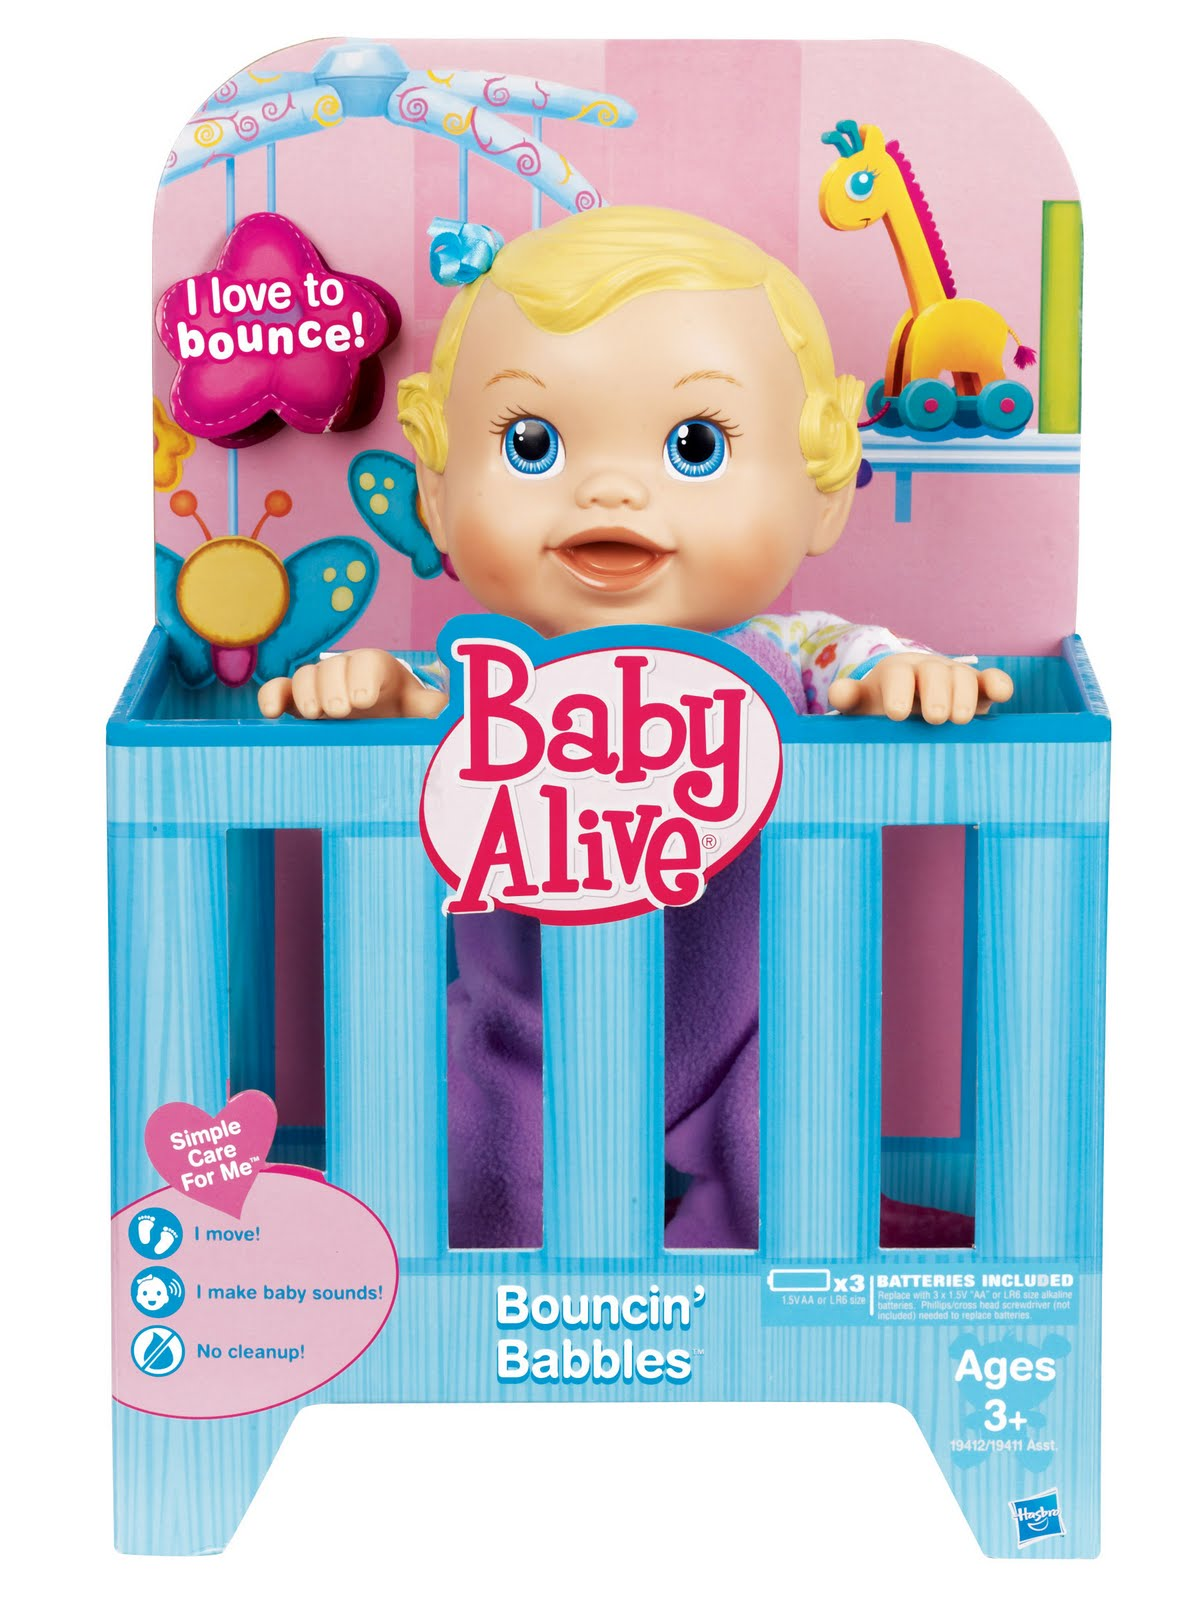 Baby alive related images